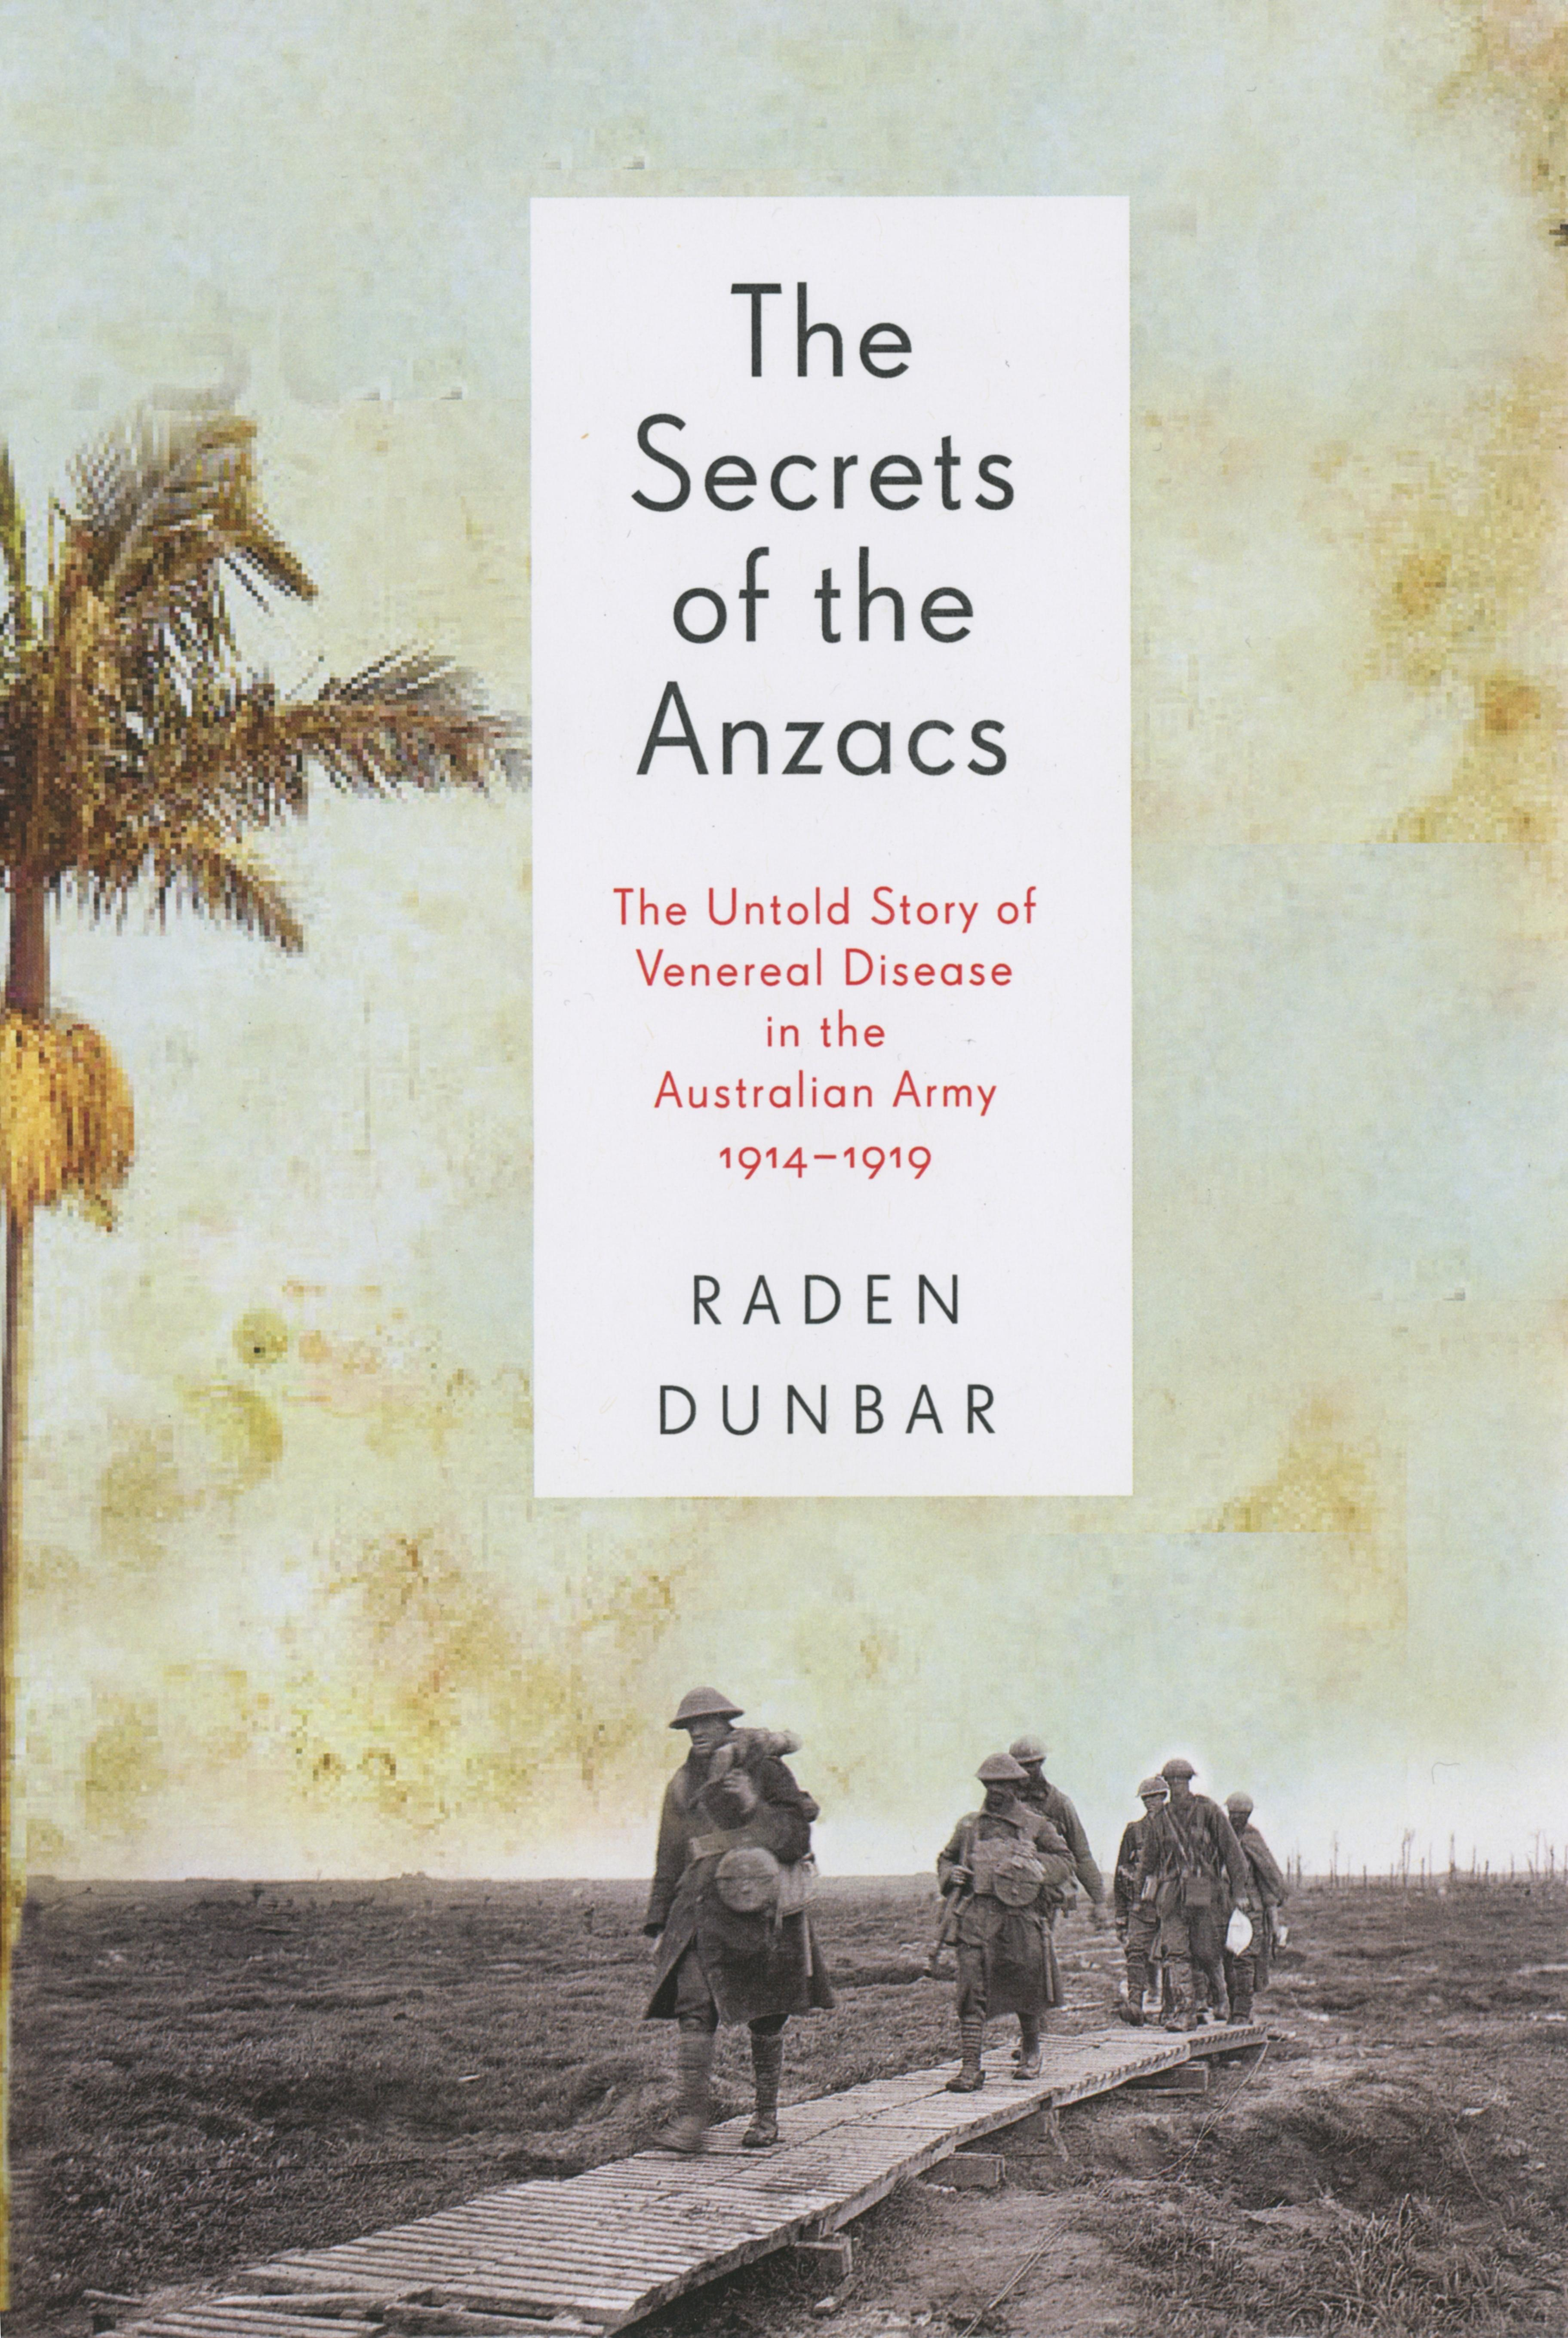 The Secrets of the Anzacs: The untold story of venereal disease in the Australianarmy,1914-1919